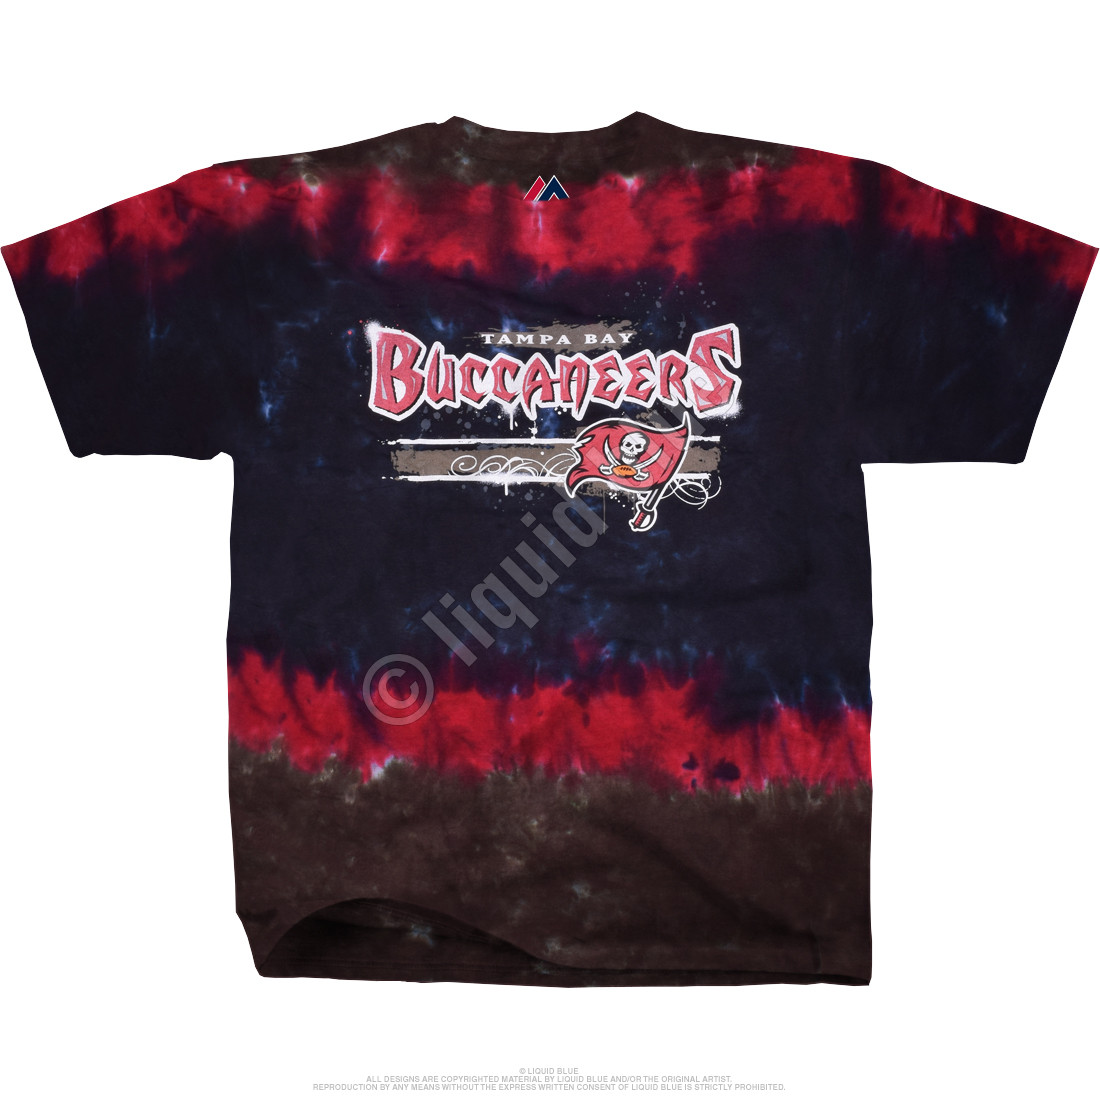 NFL Tampa Bay Buccaneers Horizontal Stencil Tie-Dye T-Shirt Tee ... a86dfd682